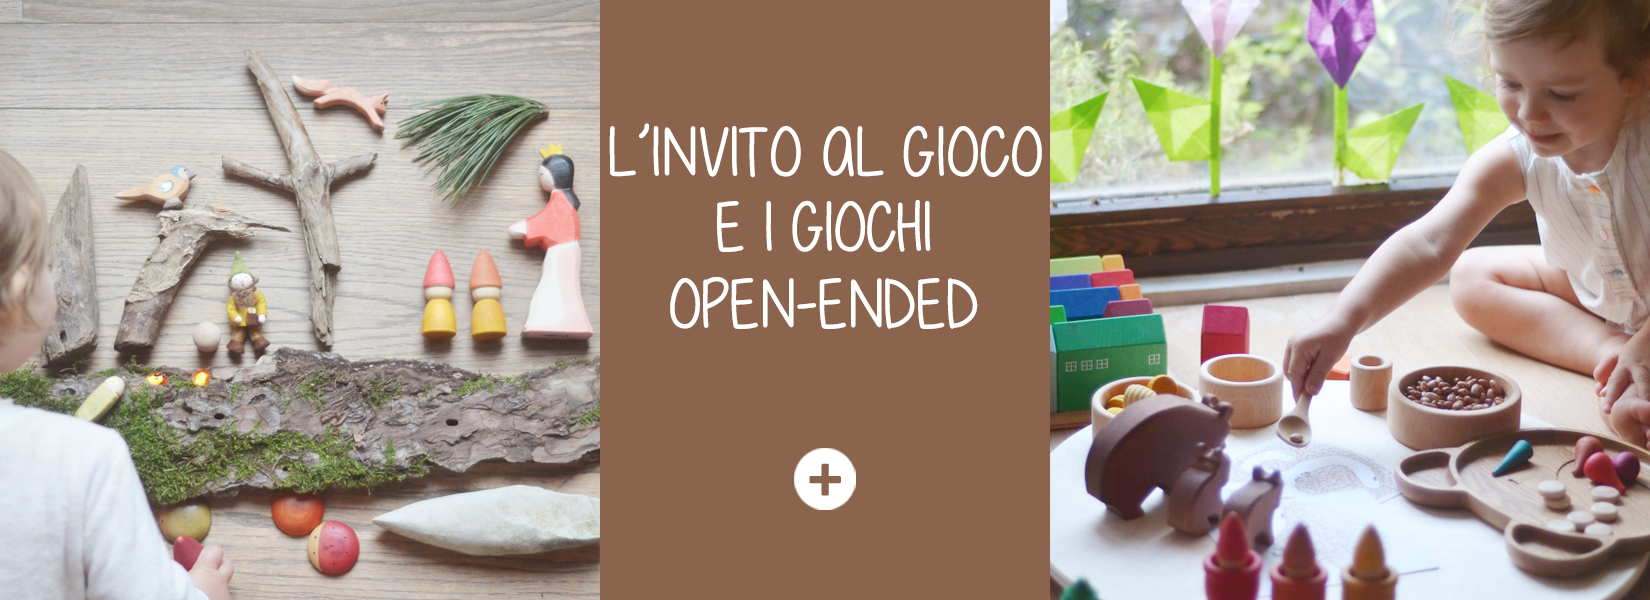 L'INVITO AL GIOCO E I GIOCHI OPEN-ENDED